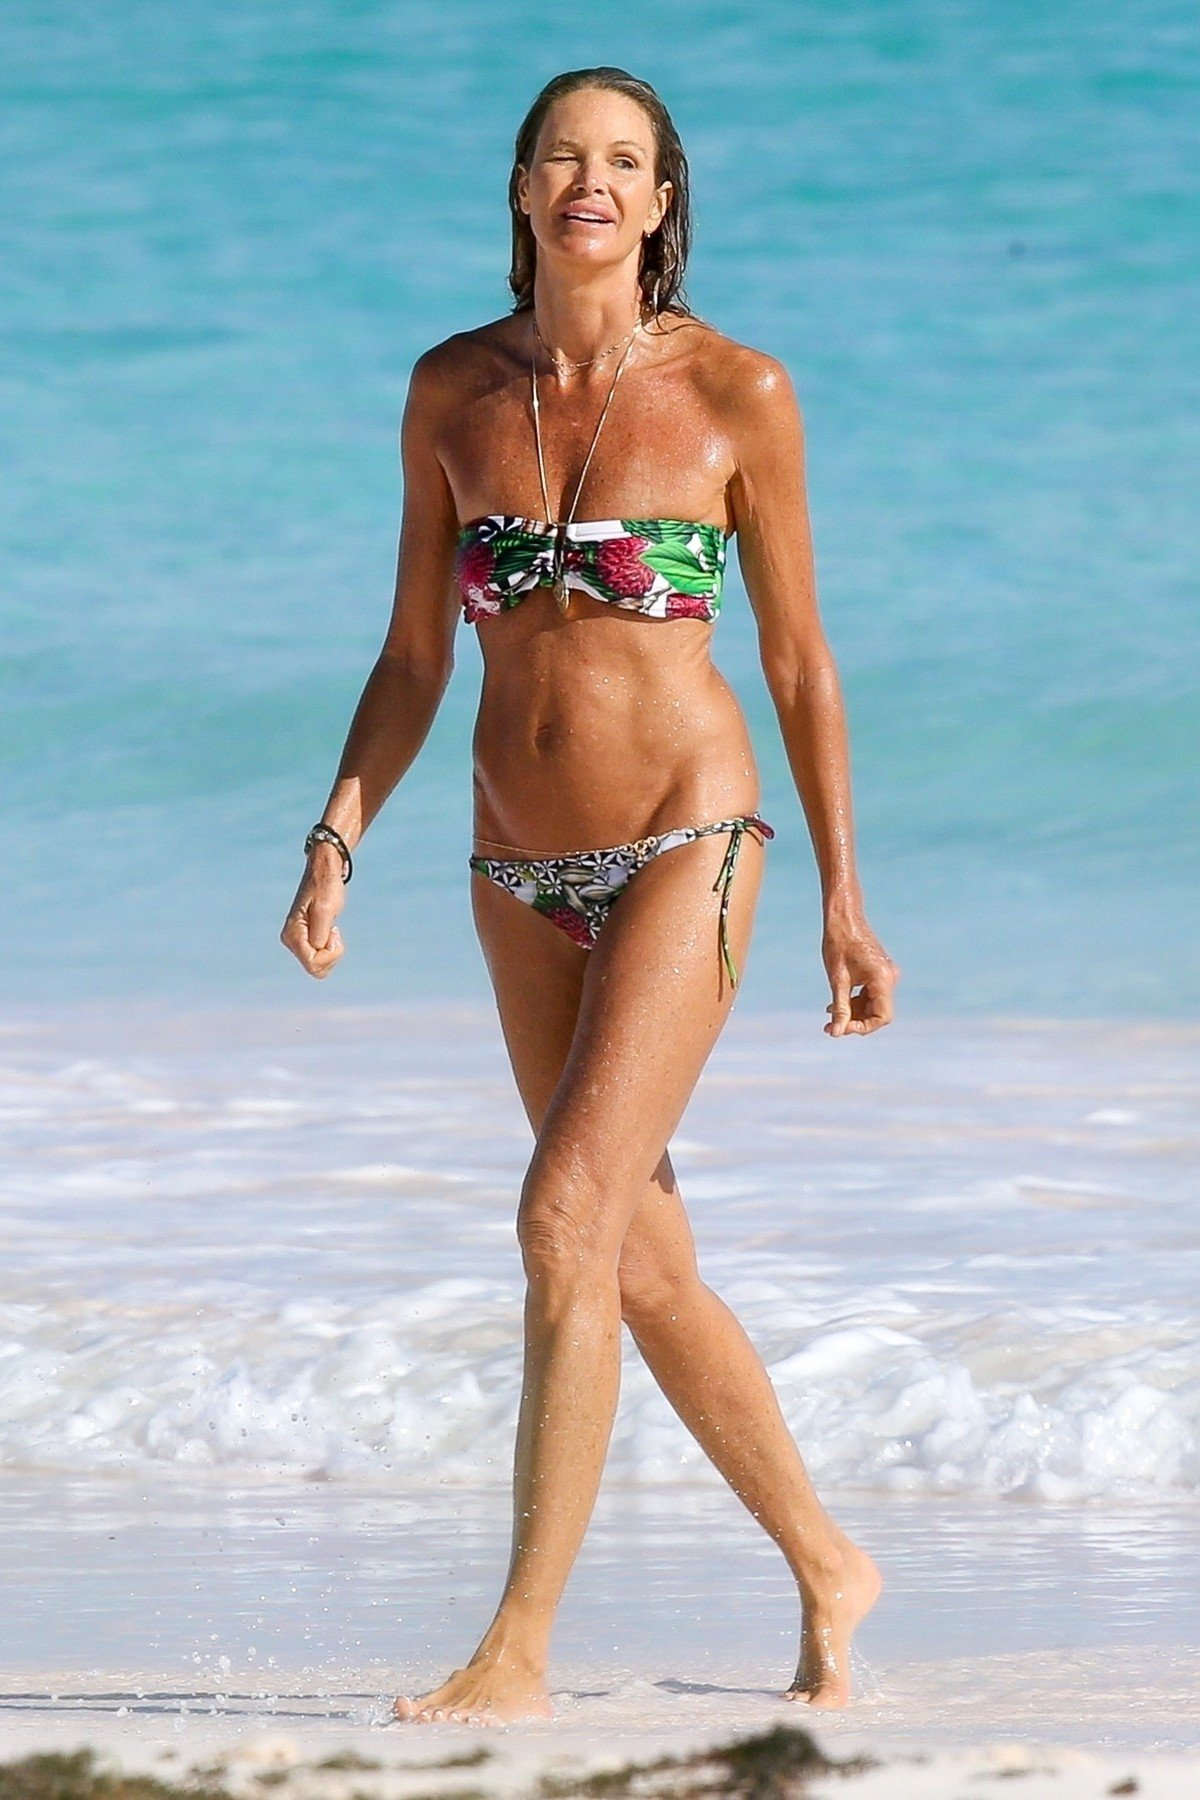 *EXCLUSIVE* ** RIGHTS: WORLDWIDE EXCEPT IN ITALY, UNITED KINGDOM ** Bahamas, BAHAMAS  - *PREMIUM-EXCLUSIVE*  - Elle MacPherson has been pictured enjoying a beach break during New Year's holidays down in the Bahamas.  Pictured: Elle Macpherson  BACKGRID USA 3 JANUARY 2018, Image: 359156112, License: Rights-managed, Restrictions: , Model Release: no, Credit line: Profimedia, AKM-GSI